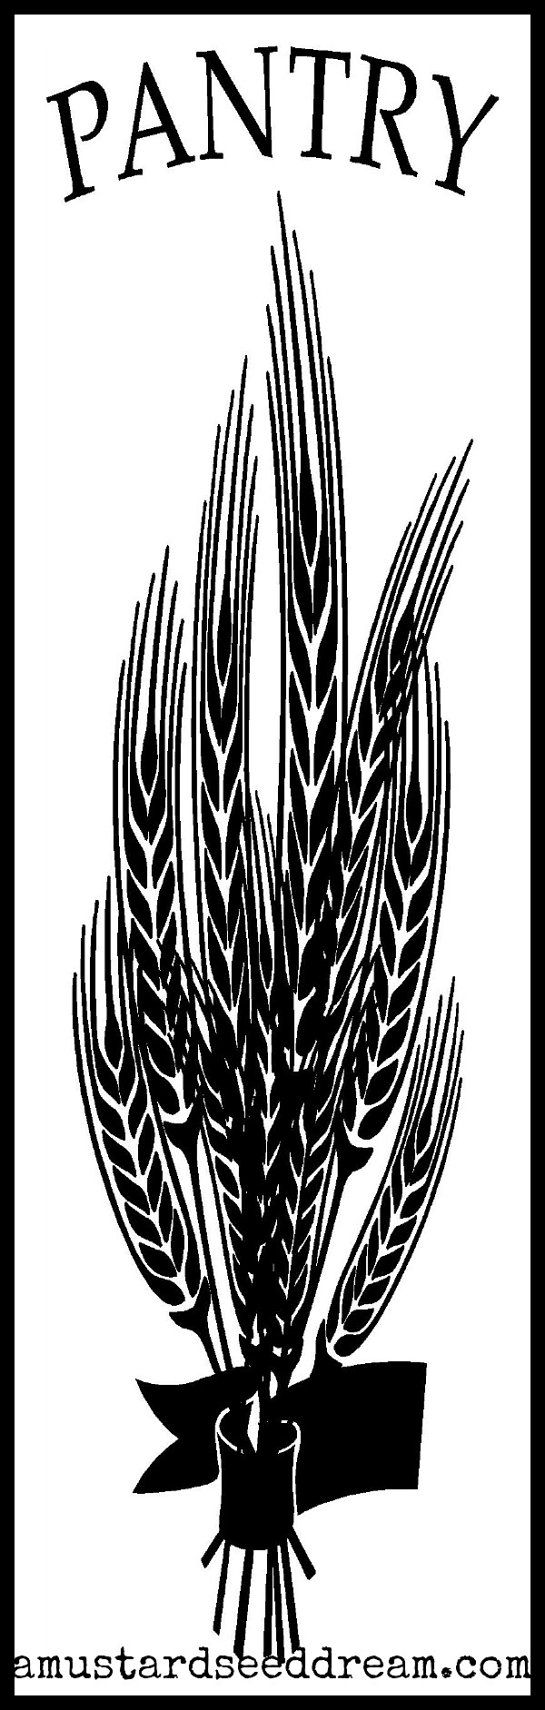 Pantry door sticker decal with wheat by mustardseeddream on etsy